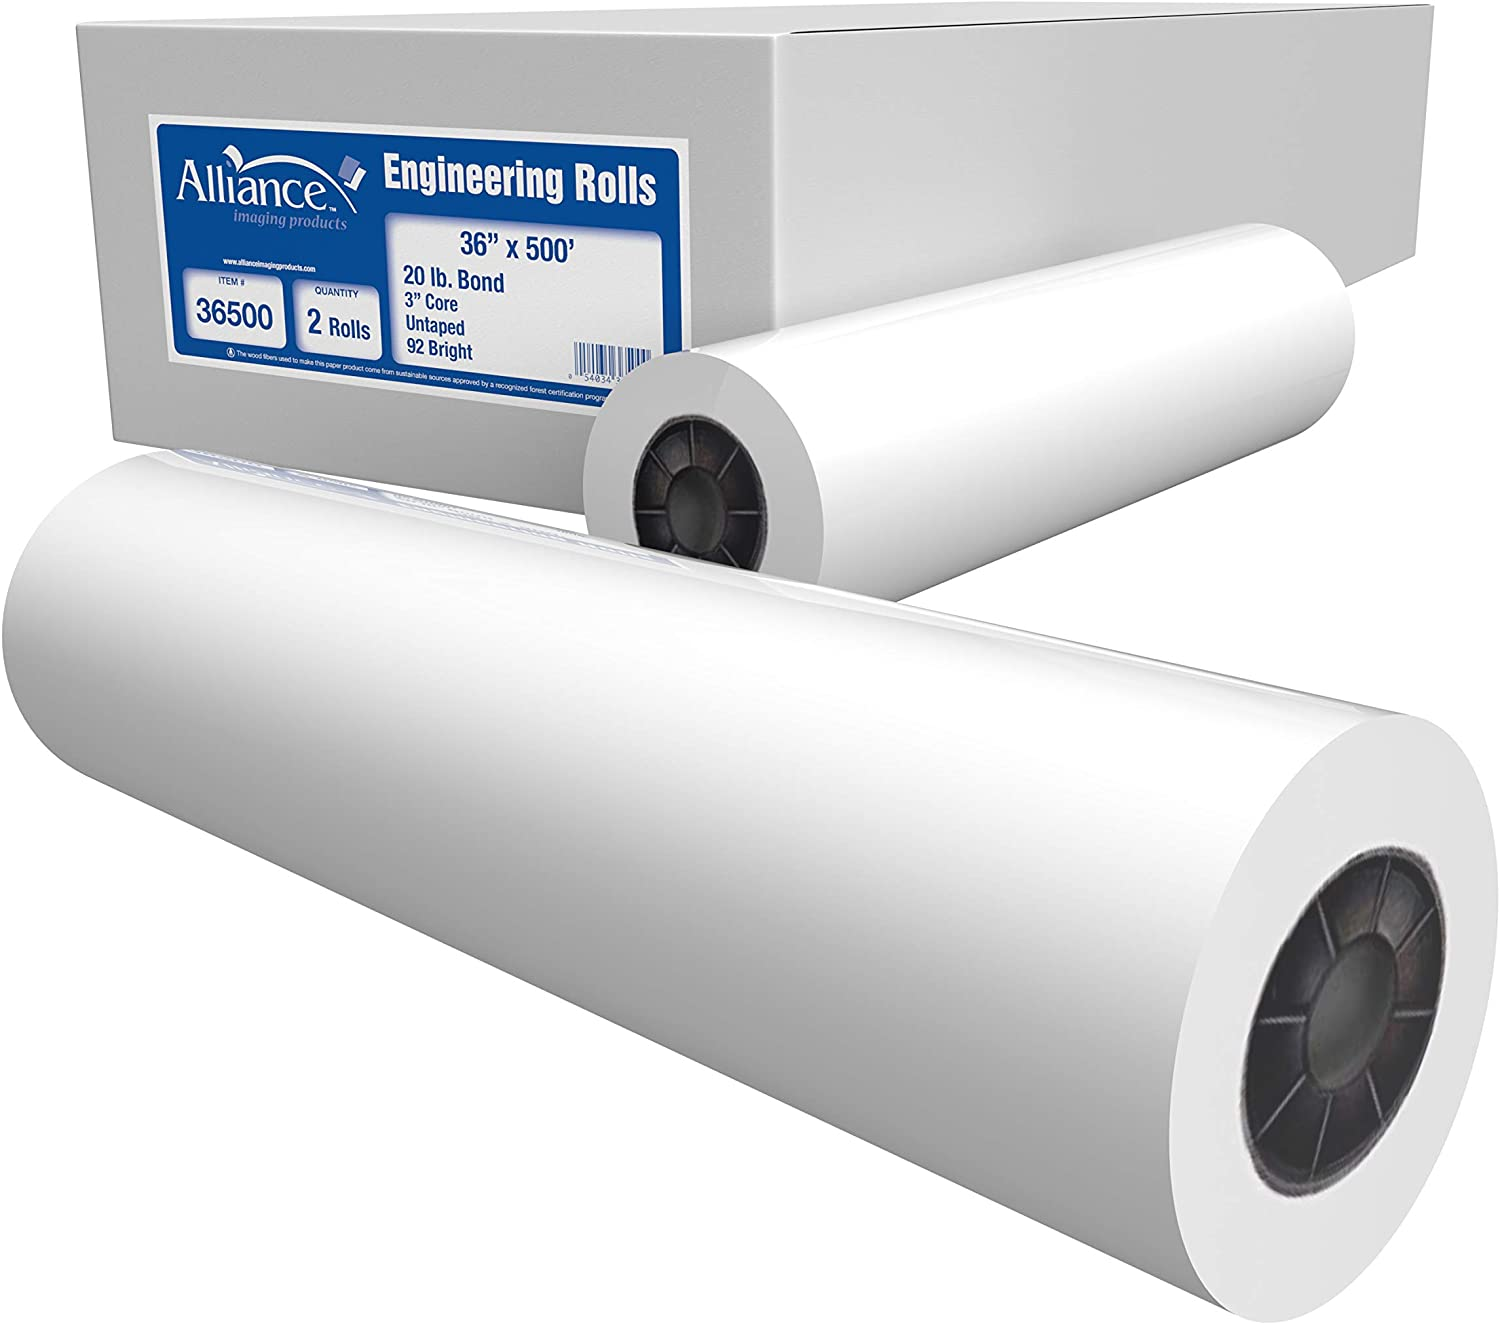 """Alliance Wide Format Popular brand Easy-to-use Paper 36"""" Engin Rolls Bond x 500'"""